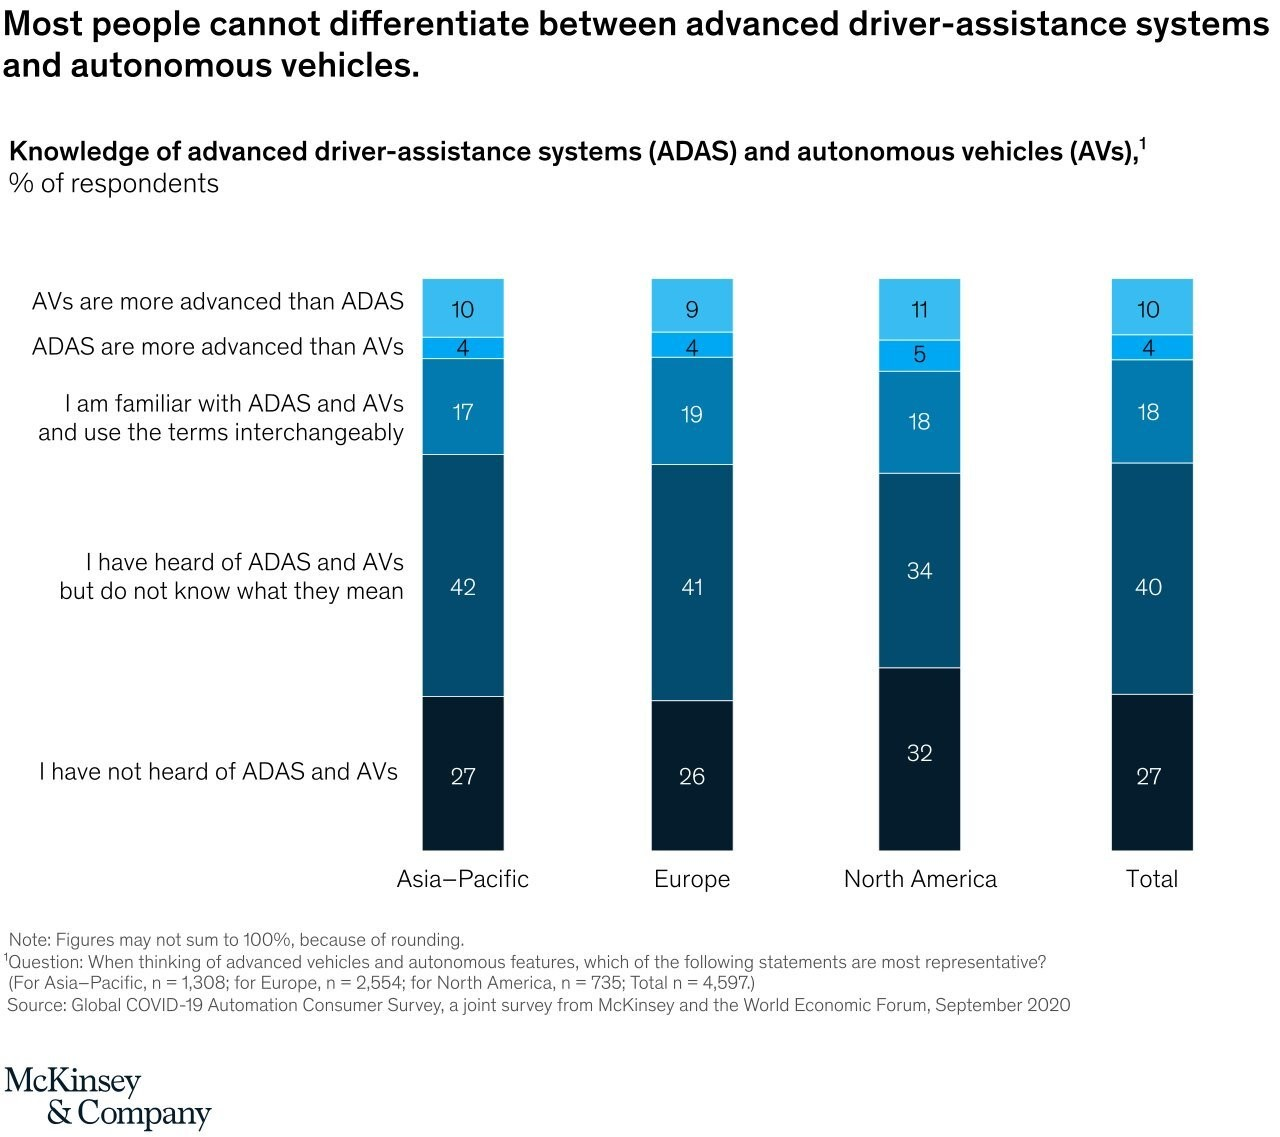 a chart showing that most people cannot differentiate between advanced driver-assistance systems and autonomous vehicles